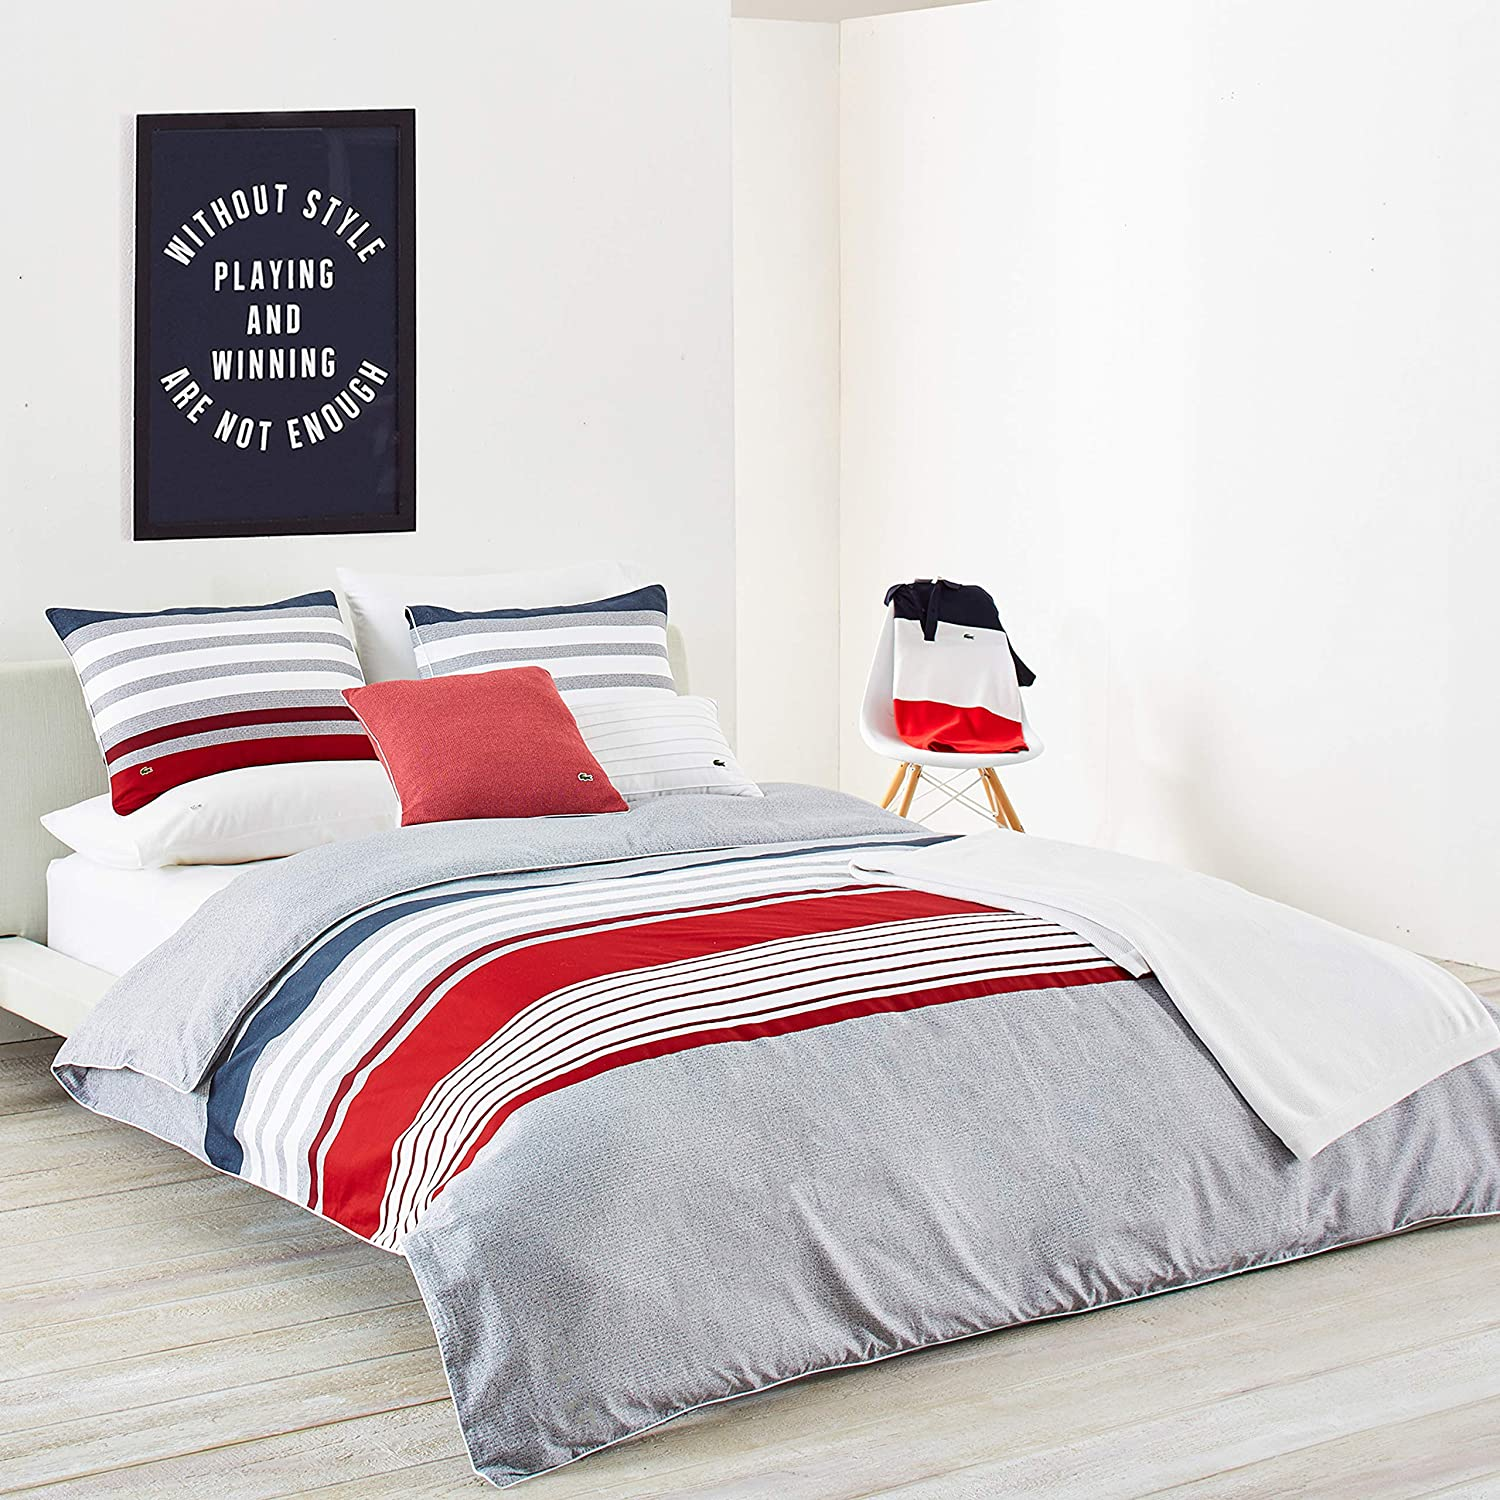 Lacoste Auckland Comforter Set, Chili Pepper, King